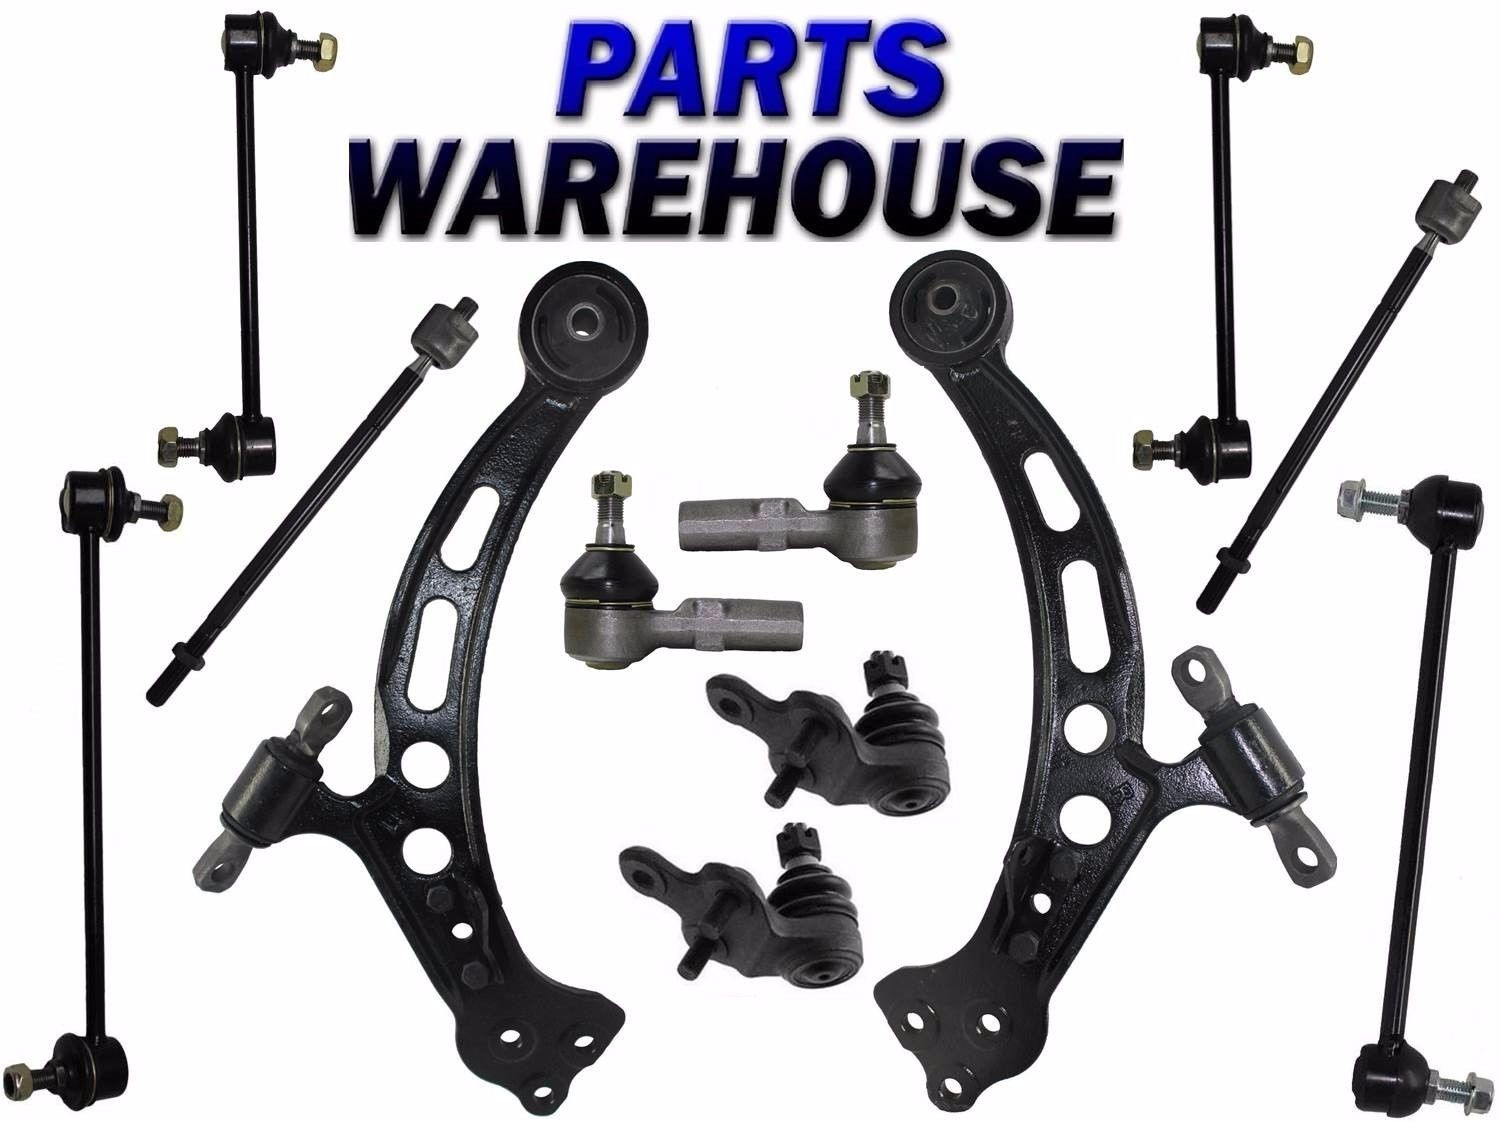 97-01 Toyota Camry OEM front left driver side lower control arm with ball joint